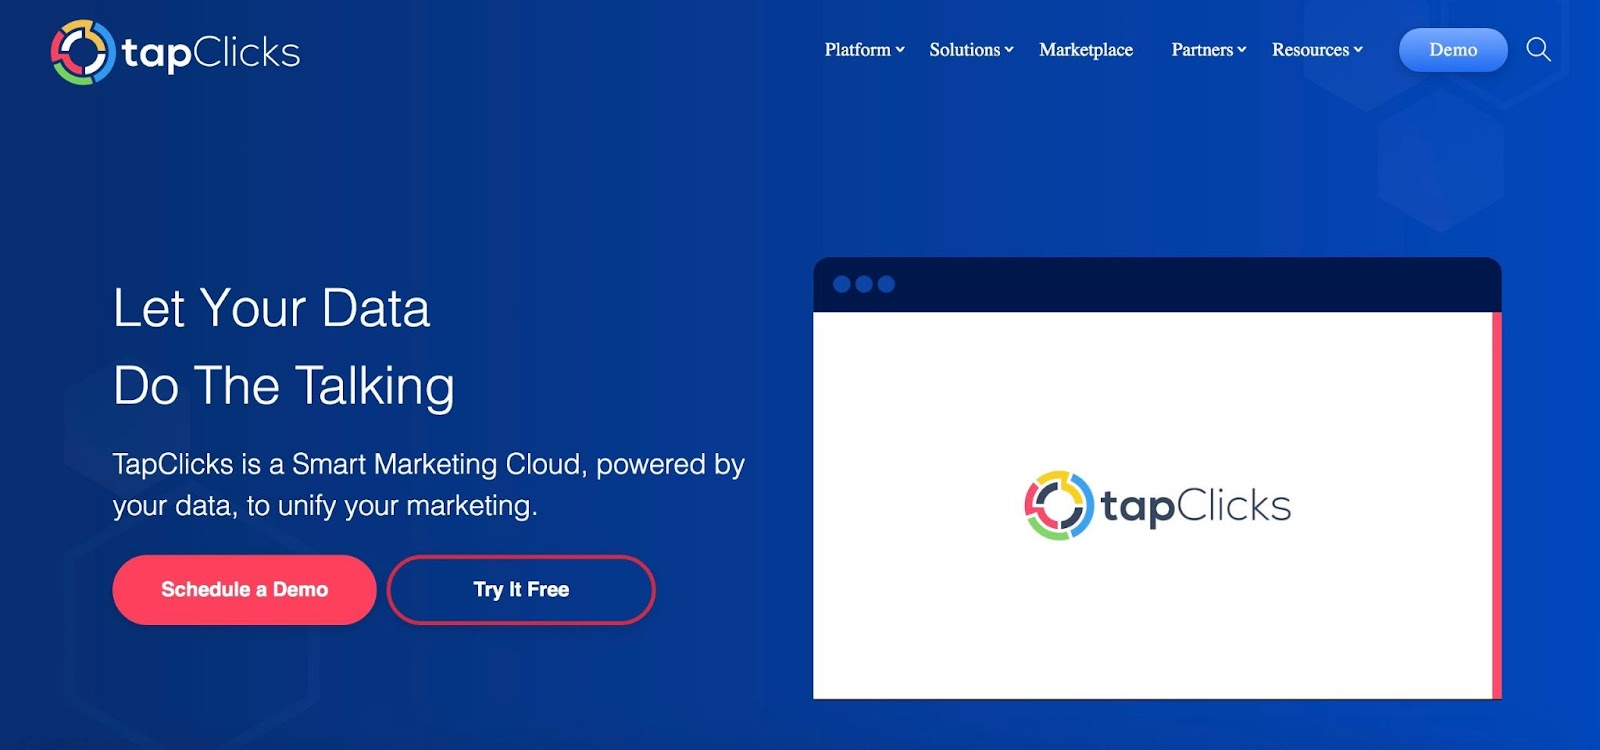 TapClicks homepage: Let your data do the talking; TapClicks is a Smart Marketing Cloud, powered by your data, to unify your marketing.